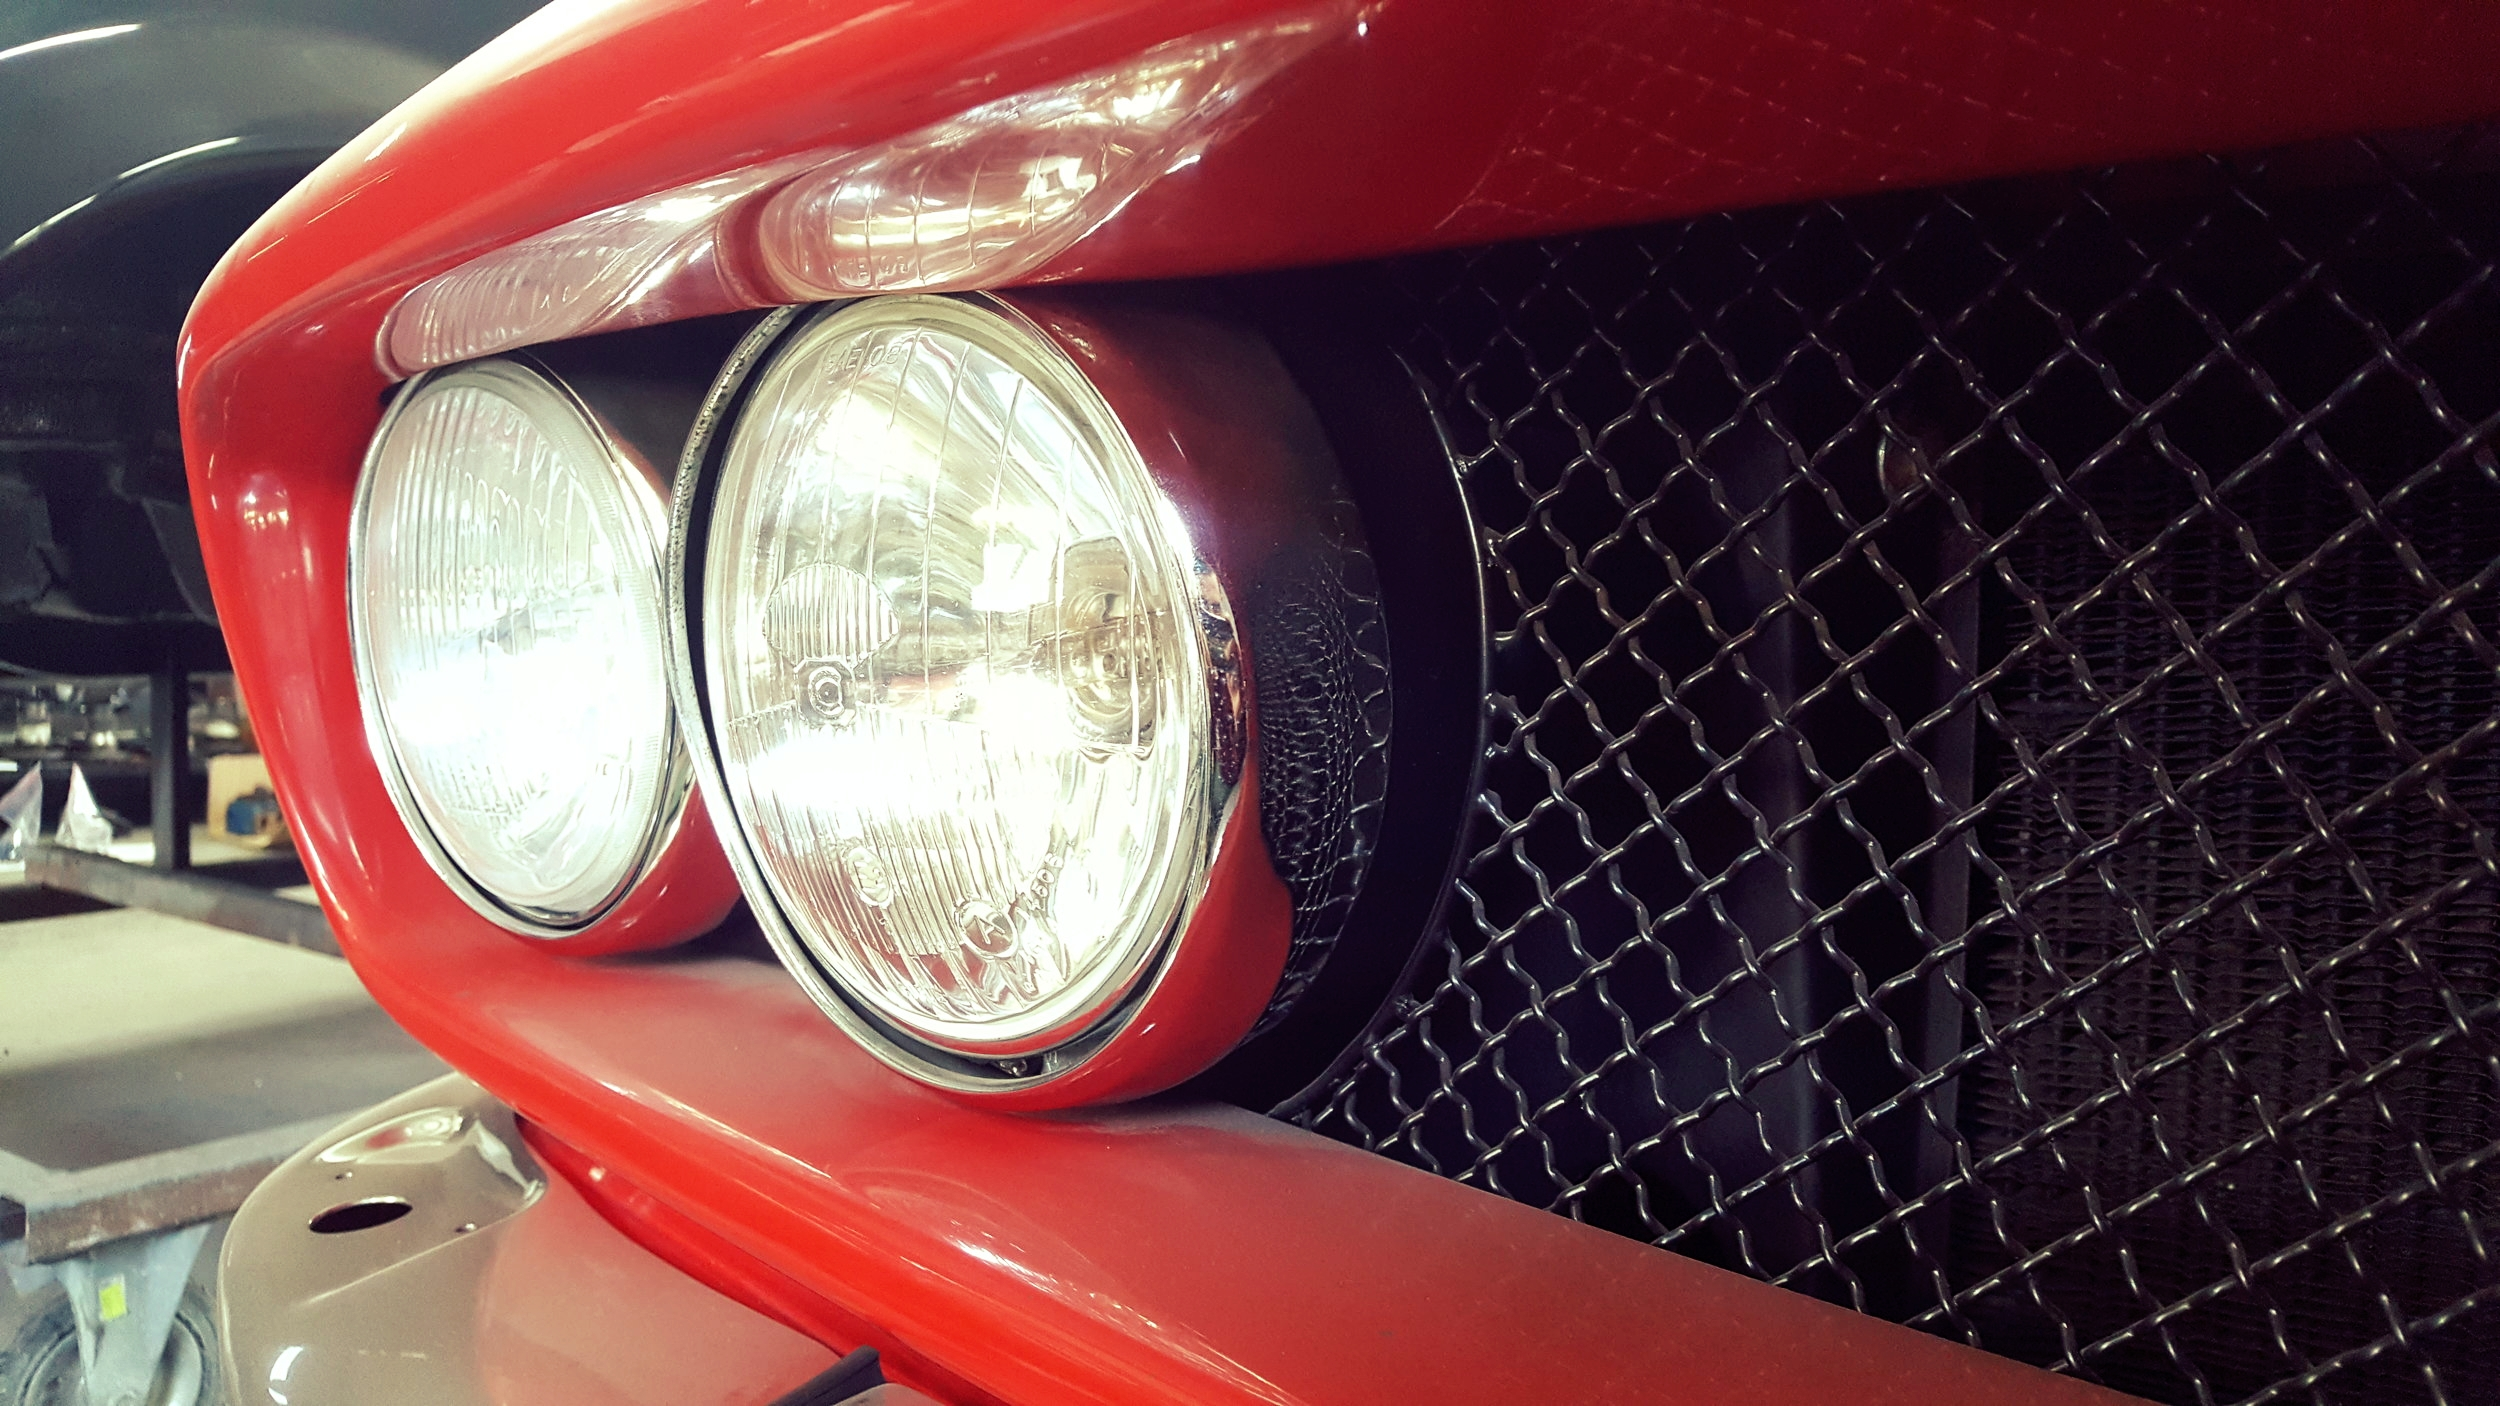 Front lamps and bonnet of an ISO Grifo were reproduced based on pictures.